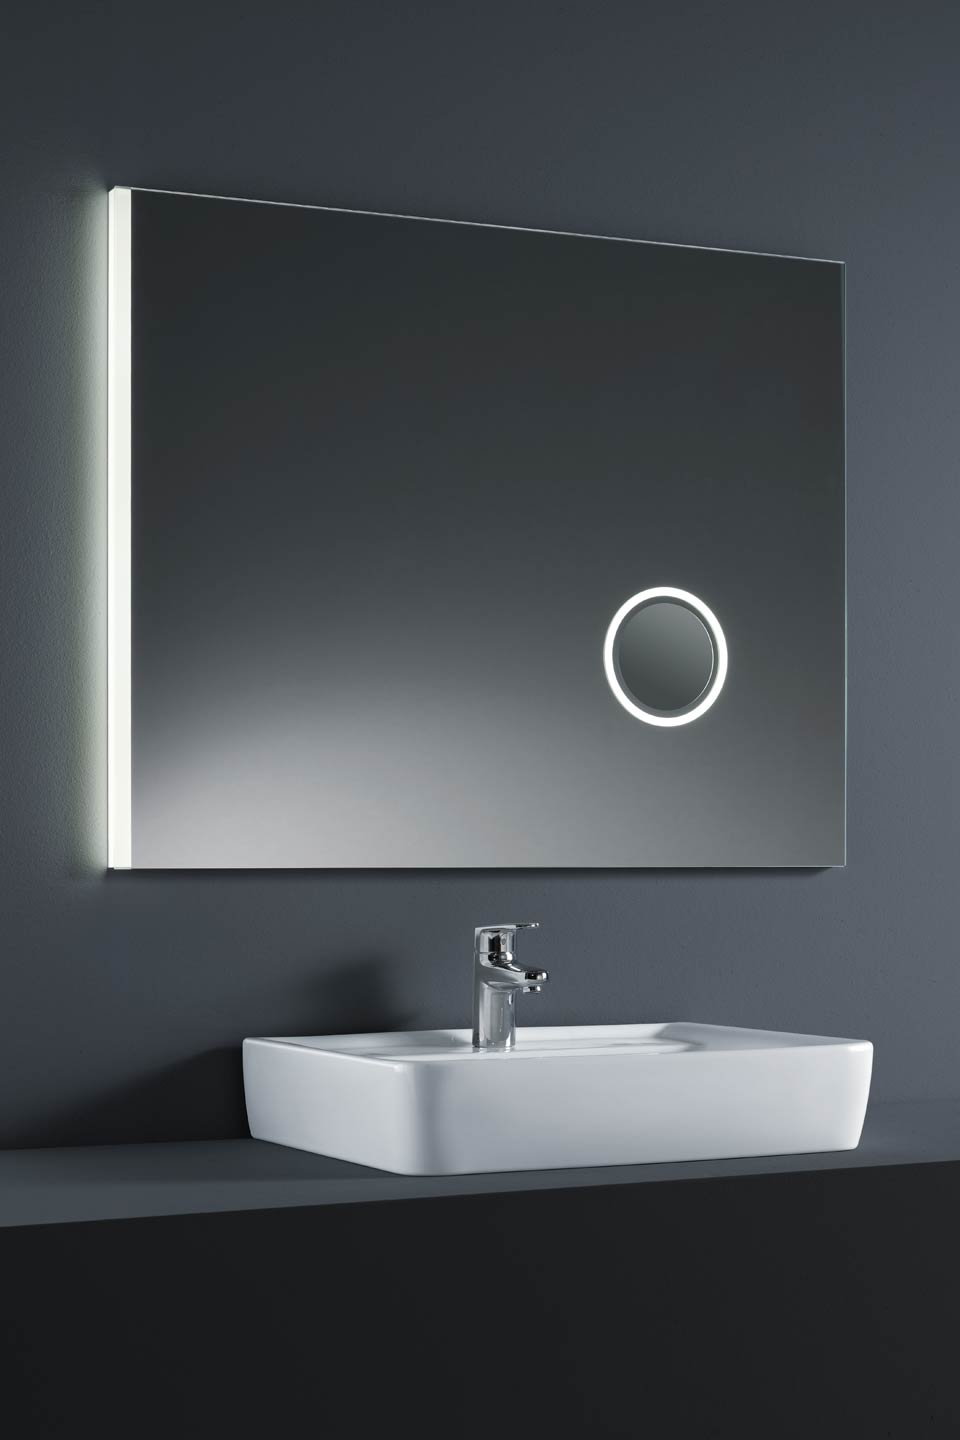 miroir lumineux led avec partie grossissante int gr e baulmann leuchten luminaire de prestige. Black Bedroom Furniture Sets. Home Design Ideas